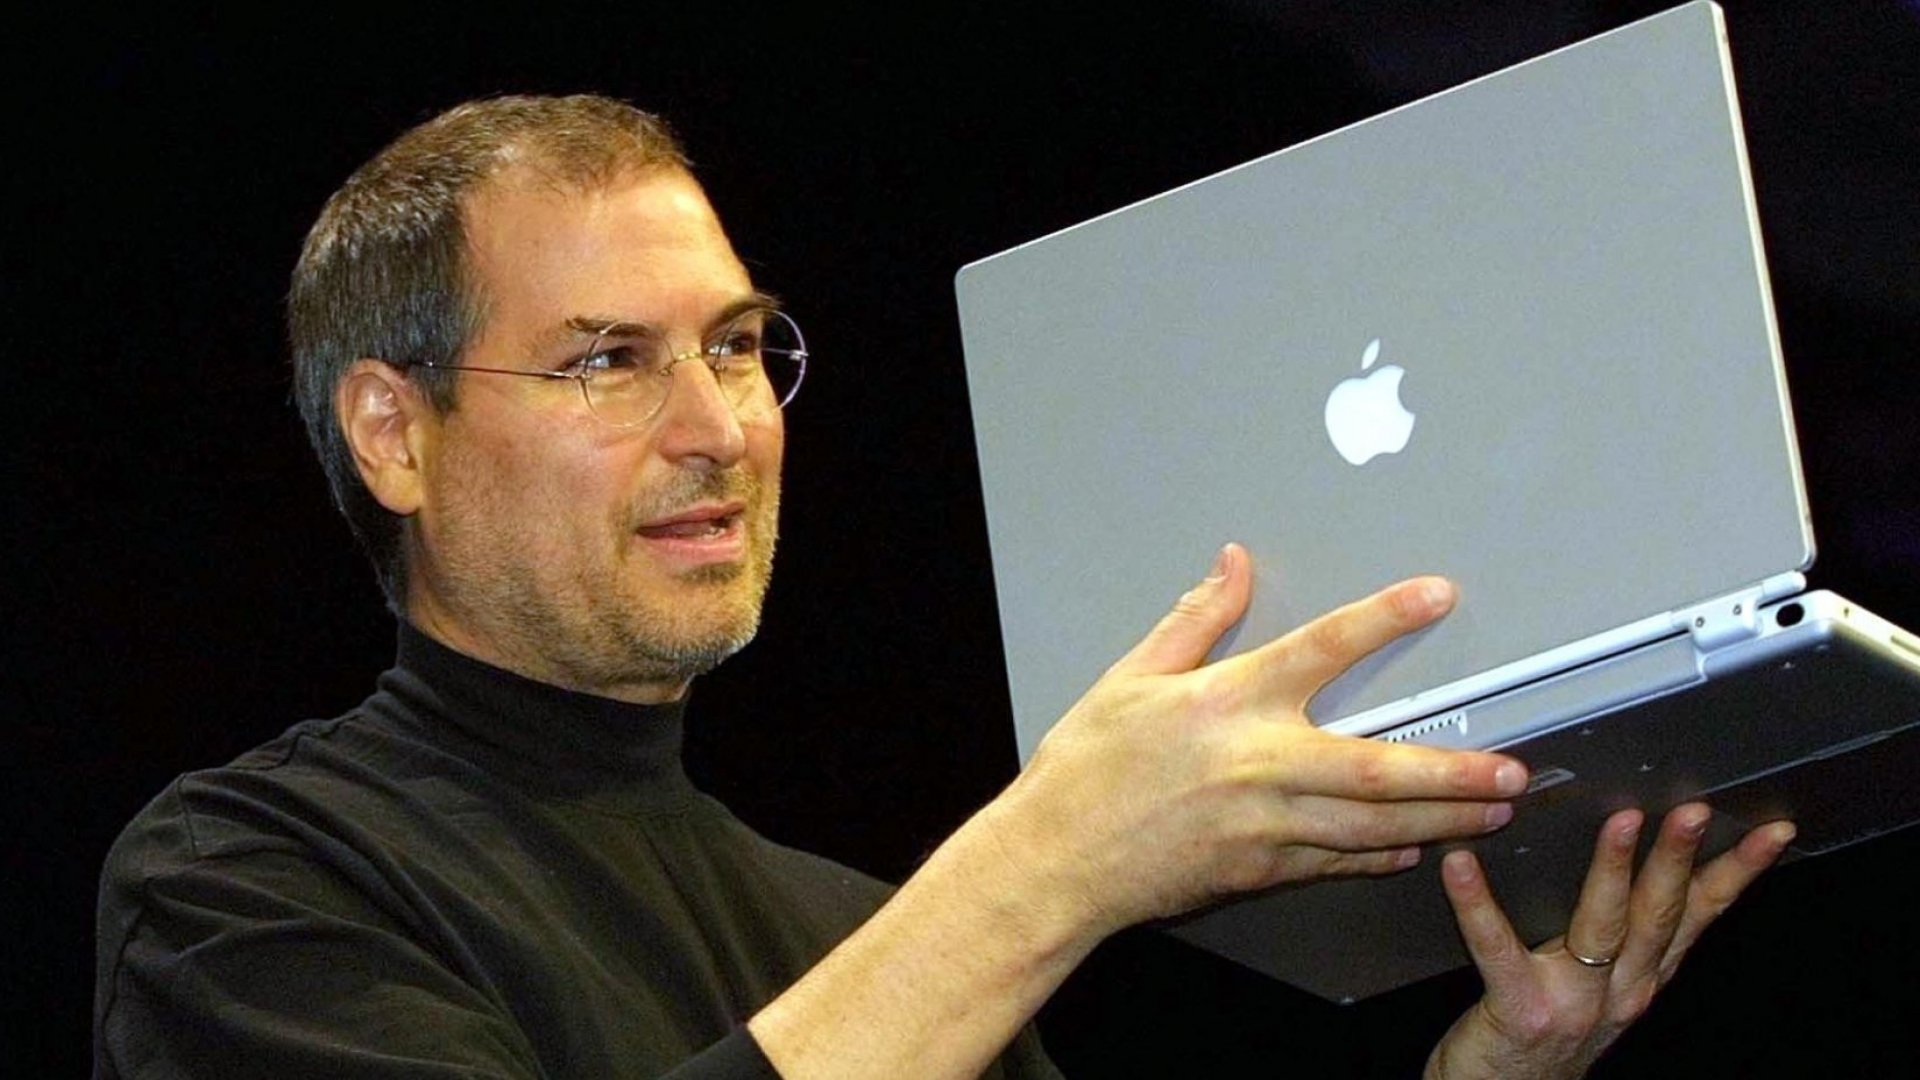 Steve Jobs, co-founder of Apple.